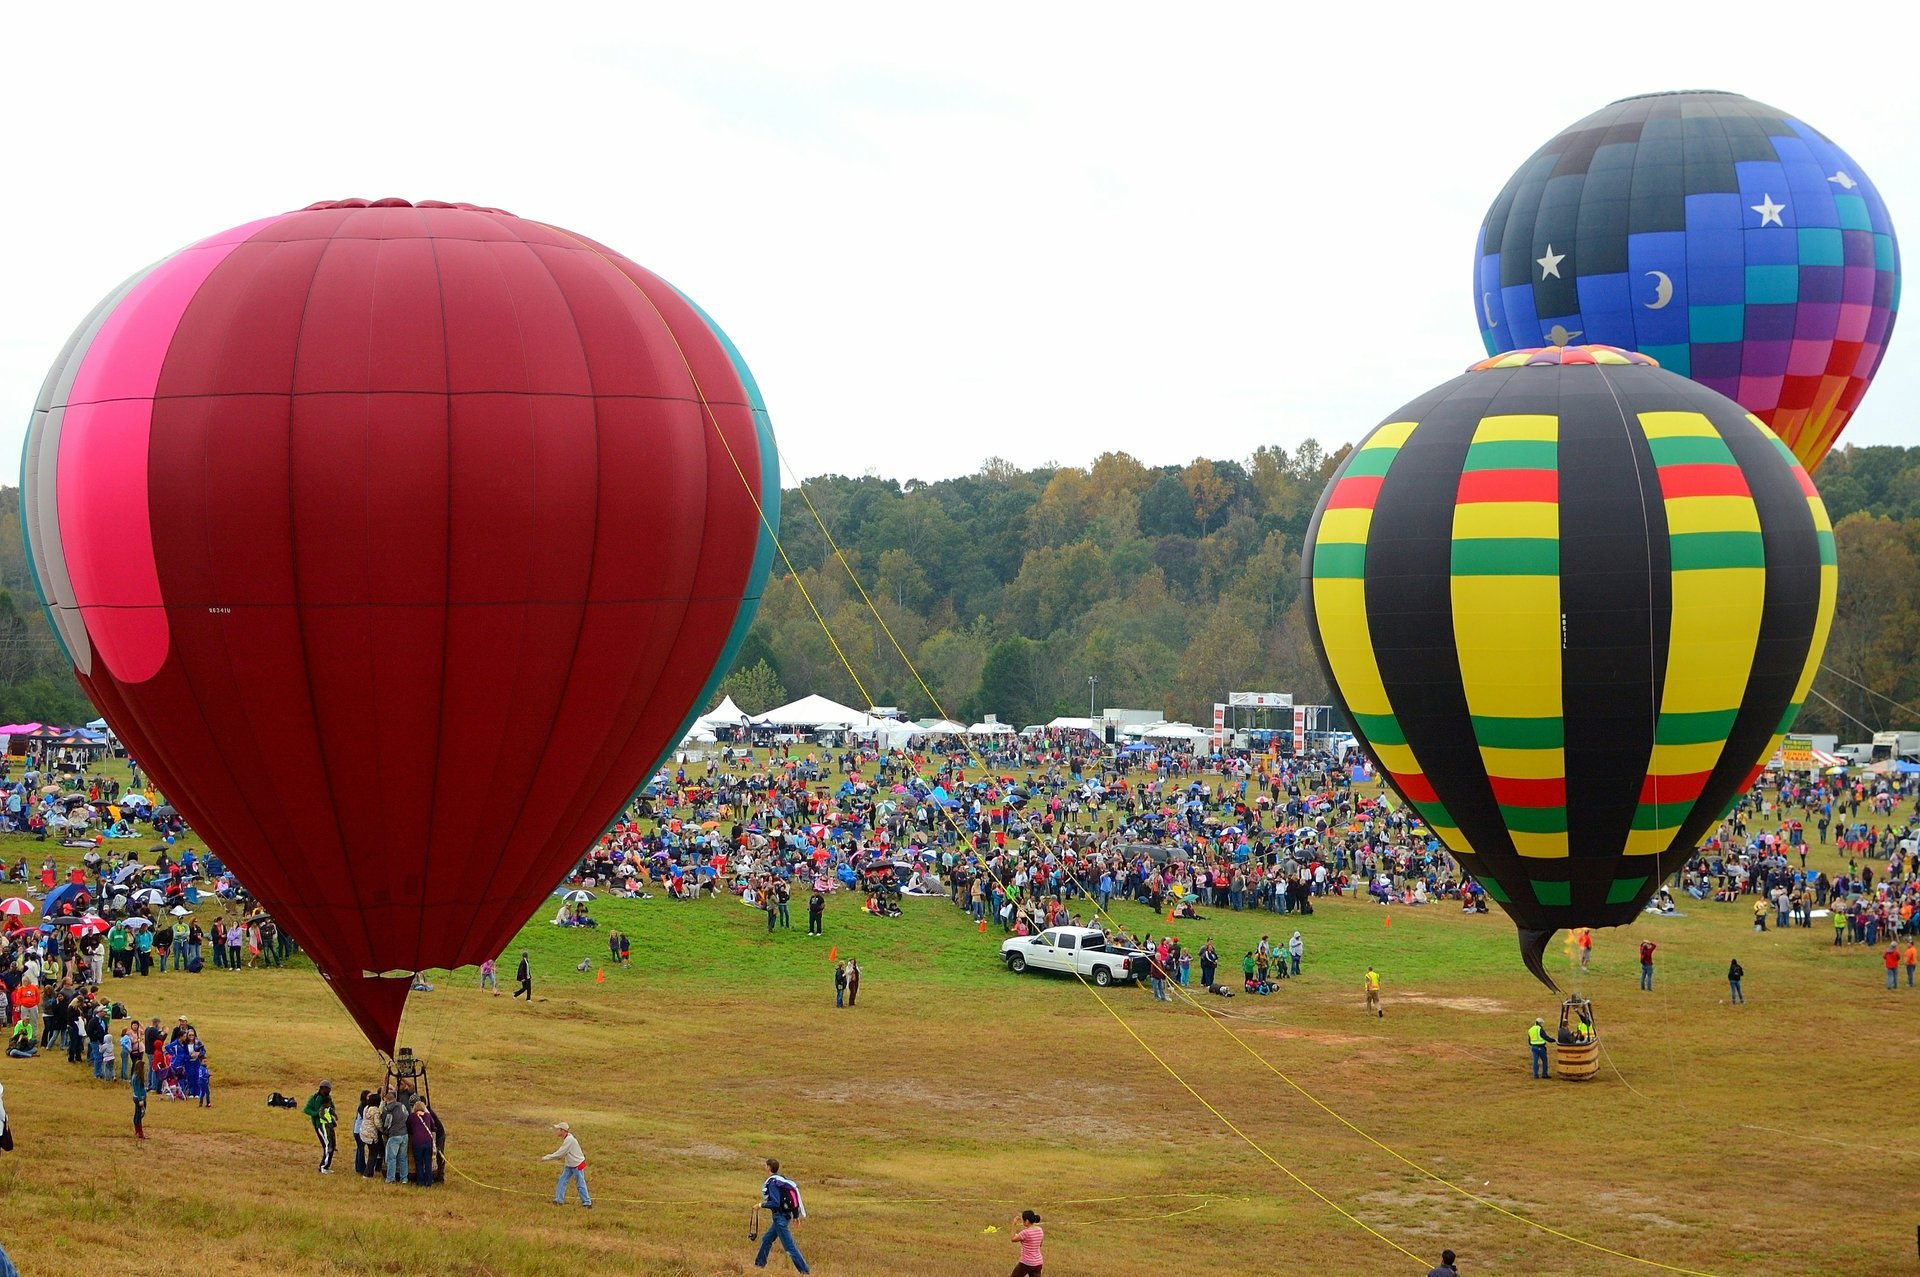 Best time to see Carolina Balloon Fest in North Carolina 2020